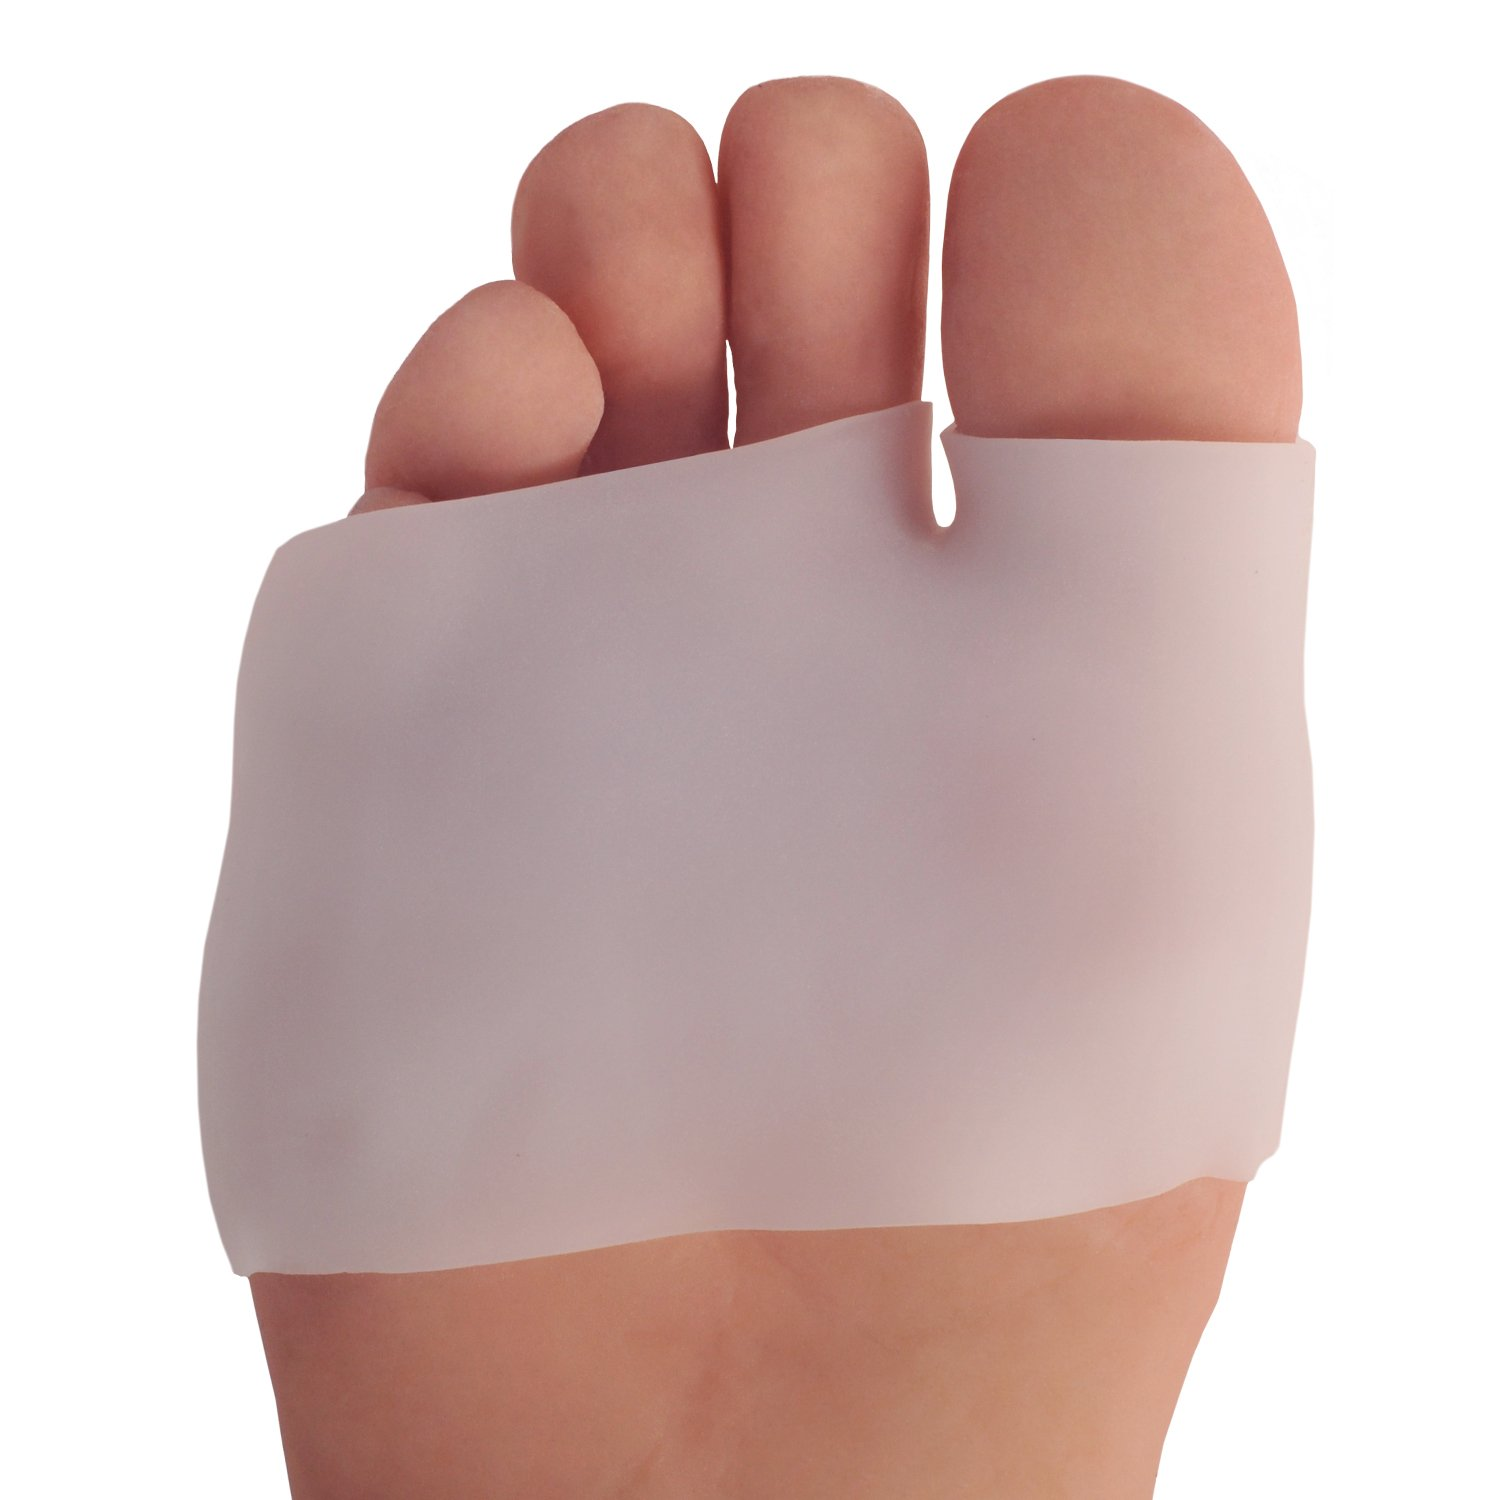 Dr. Frederick's Original Half Toe Sleeve Metatarsal Pads - Bunion & Forefoot Cushioning - 2 Pieces - Great for Diabetic Feet - Prevent Calluses and Blisters - For Men and Women